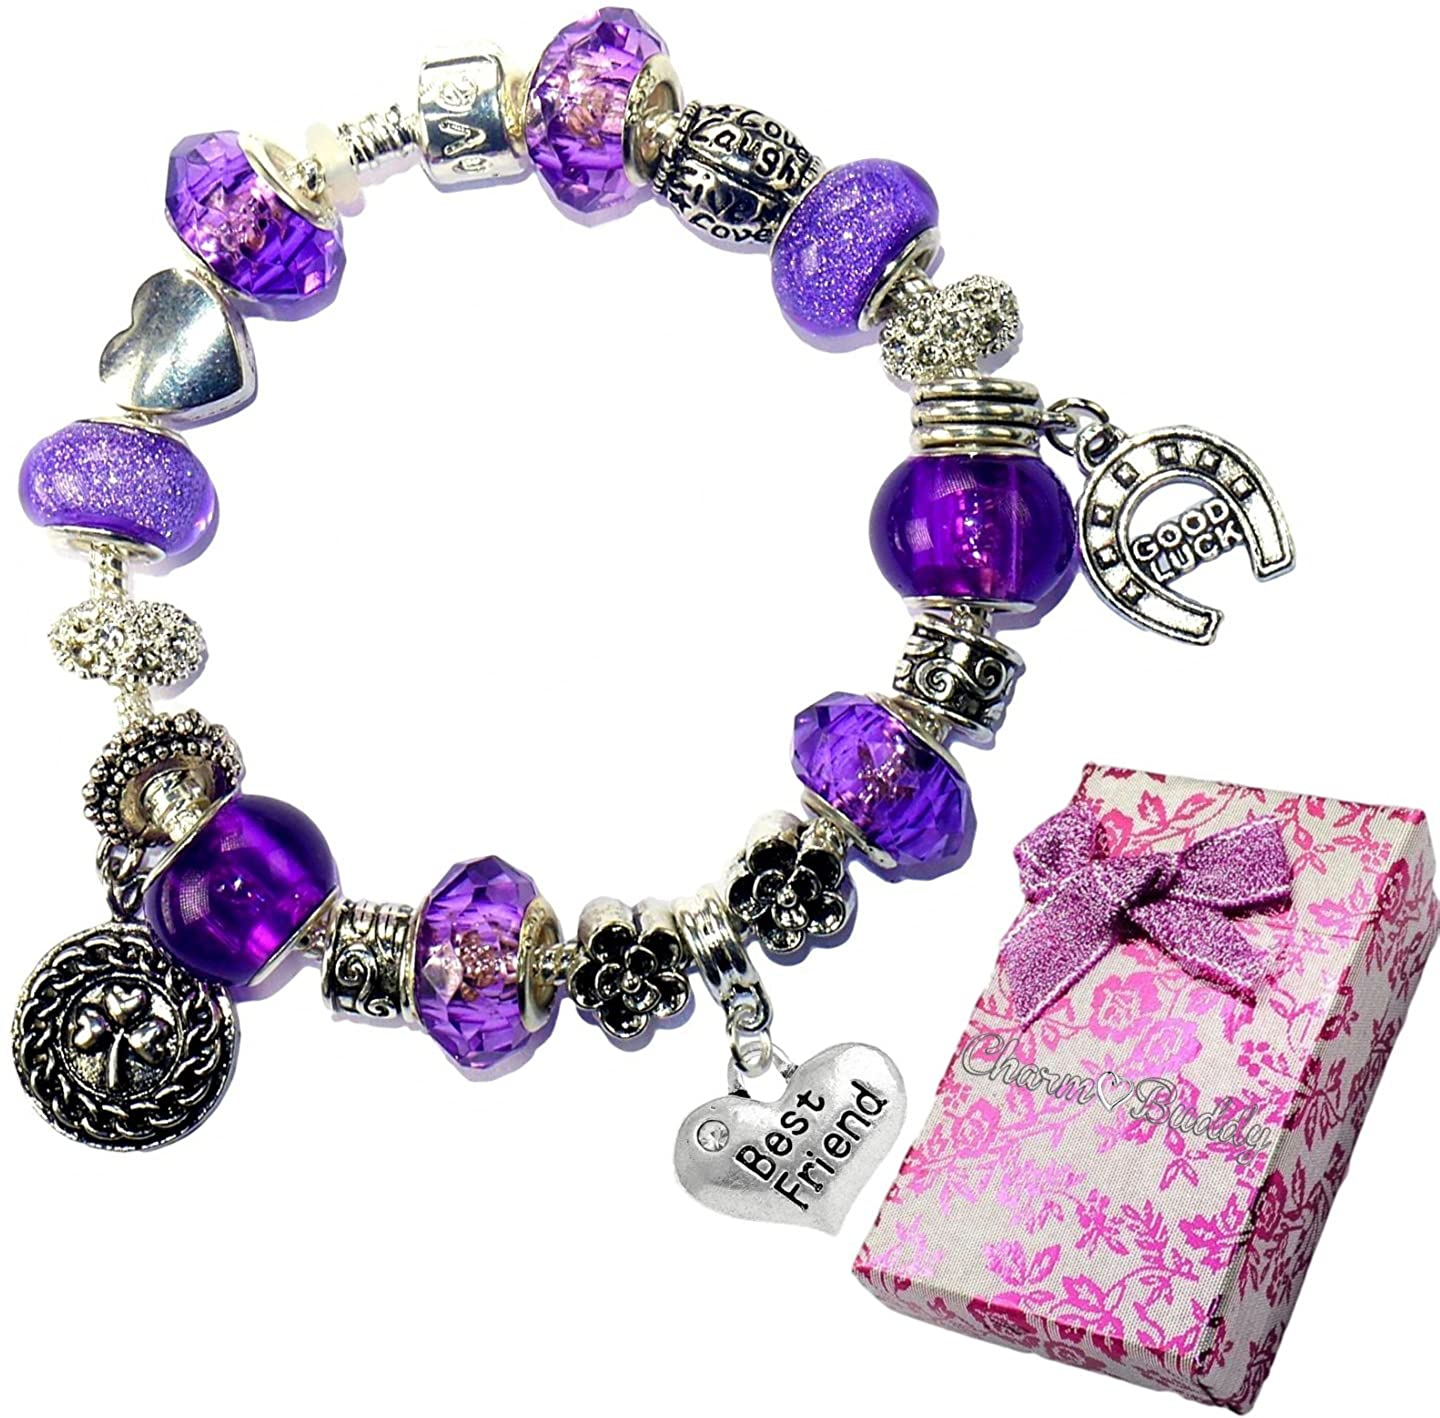 Charm Buddy Best Friend Purple Crystal Pandora Style Bracelet With Charms Gift Box